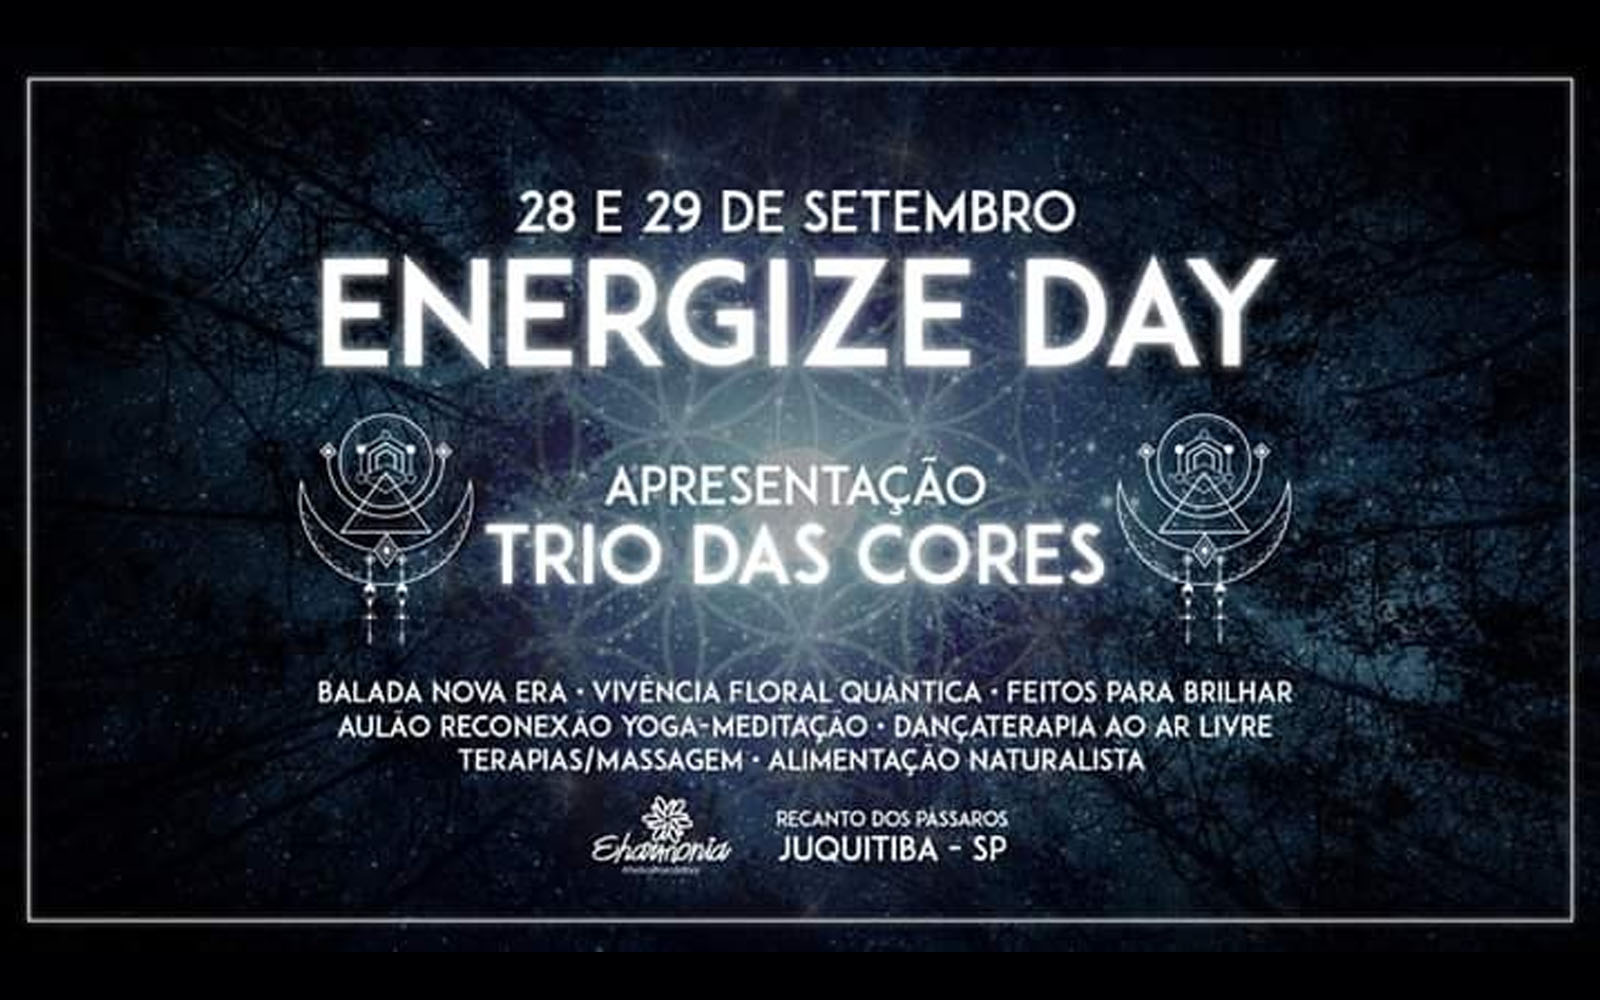 Energize Day